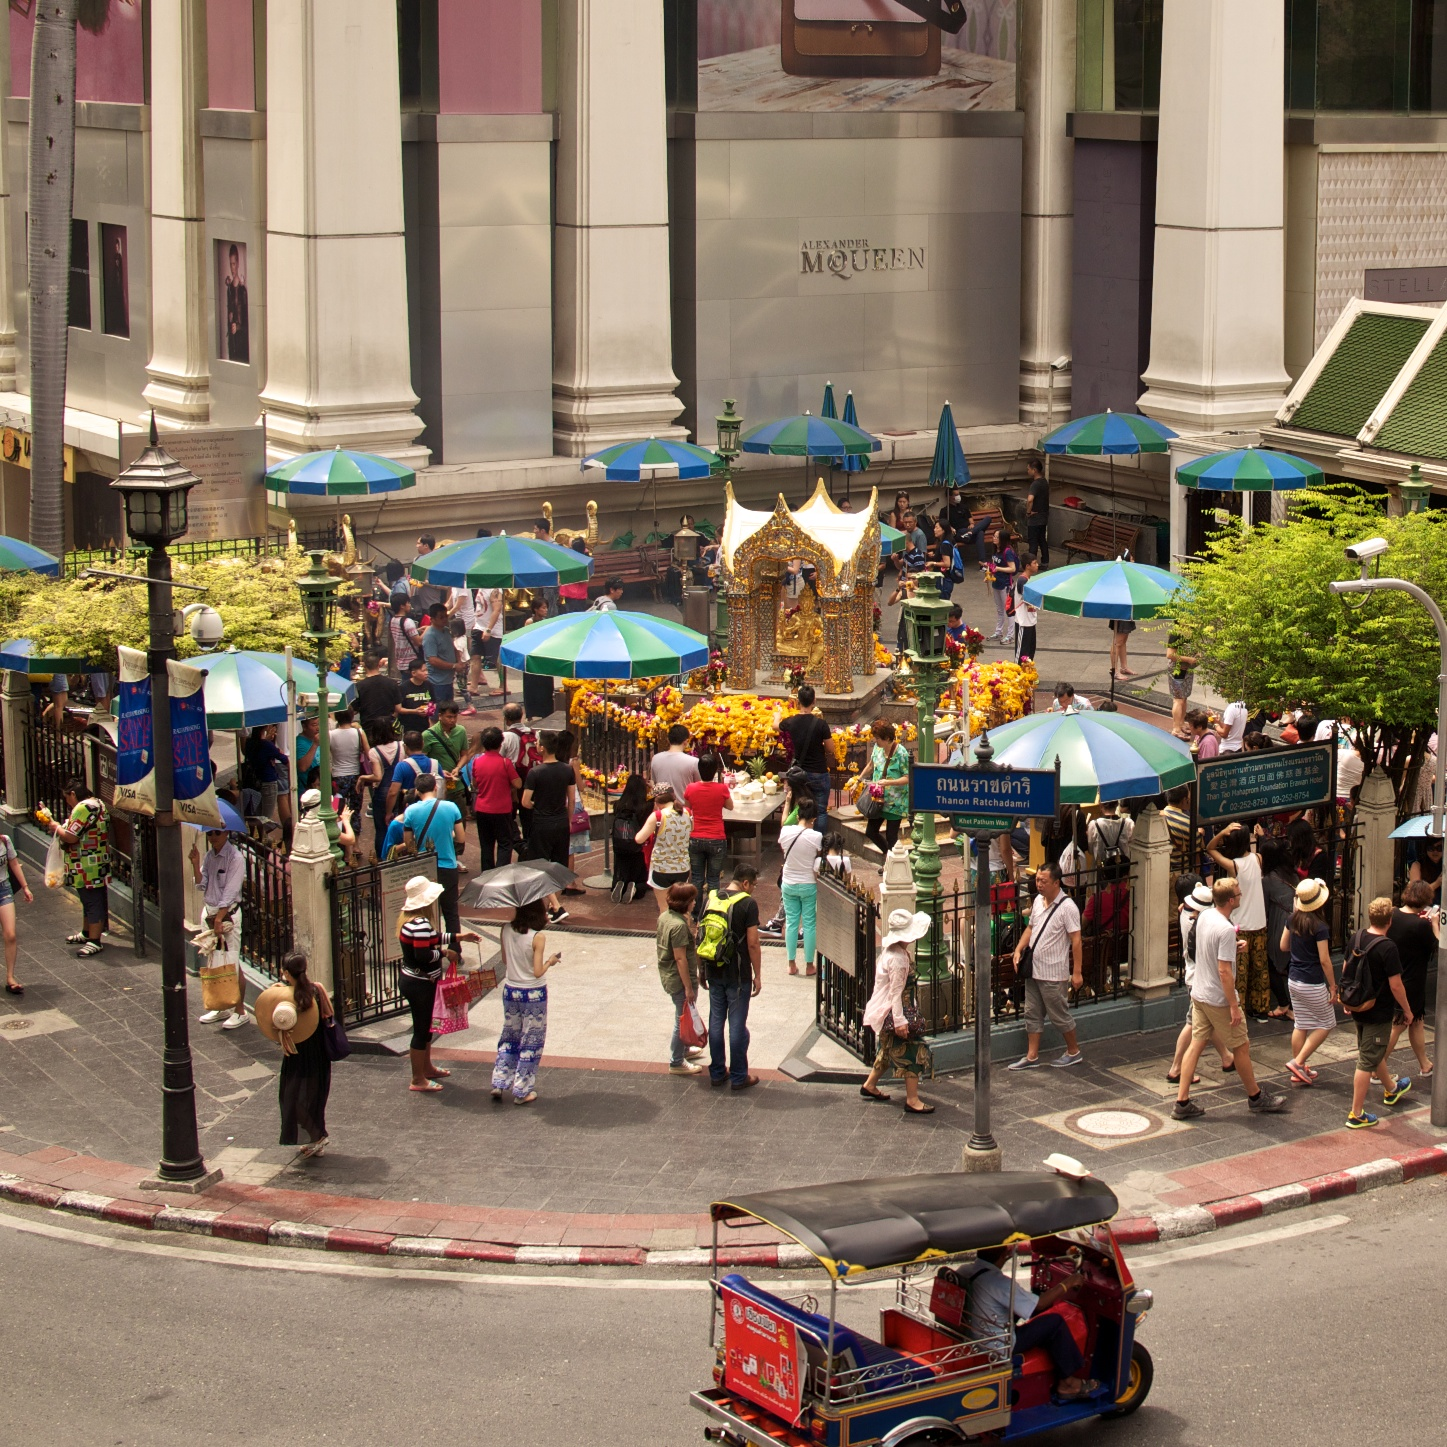 Erawan Shrine in Central Bangkok one week prior to the bombing; I hope it returns as a place of peace soon.